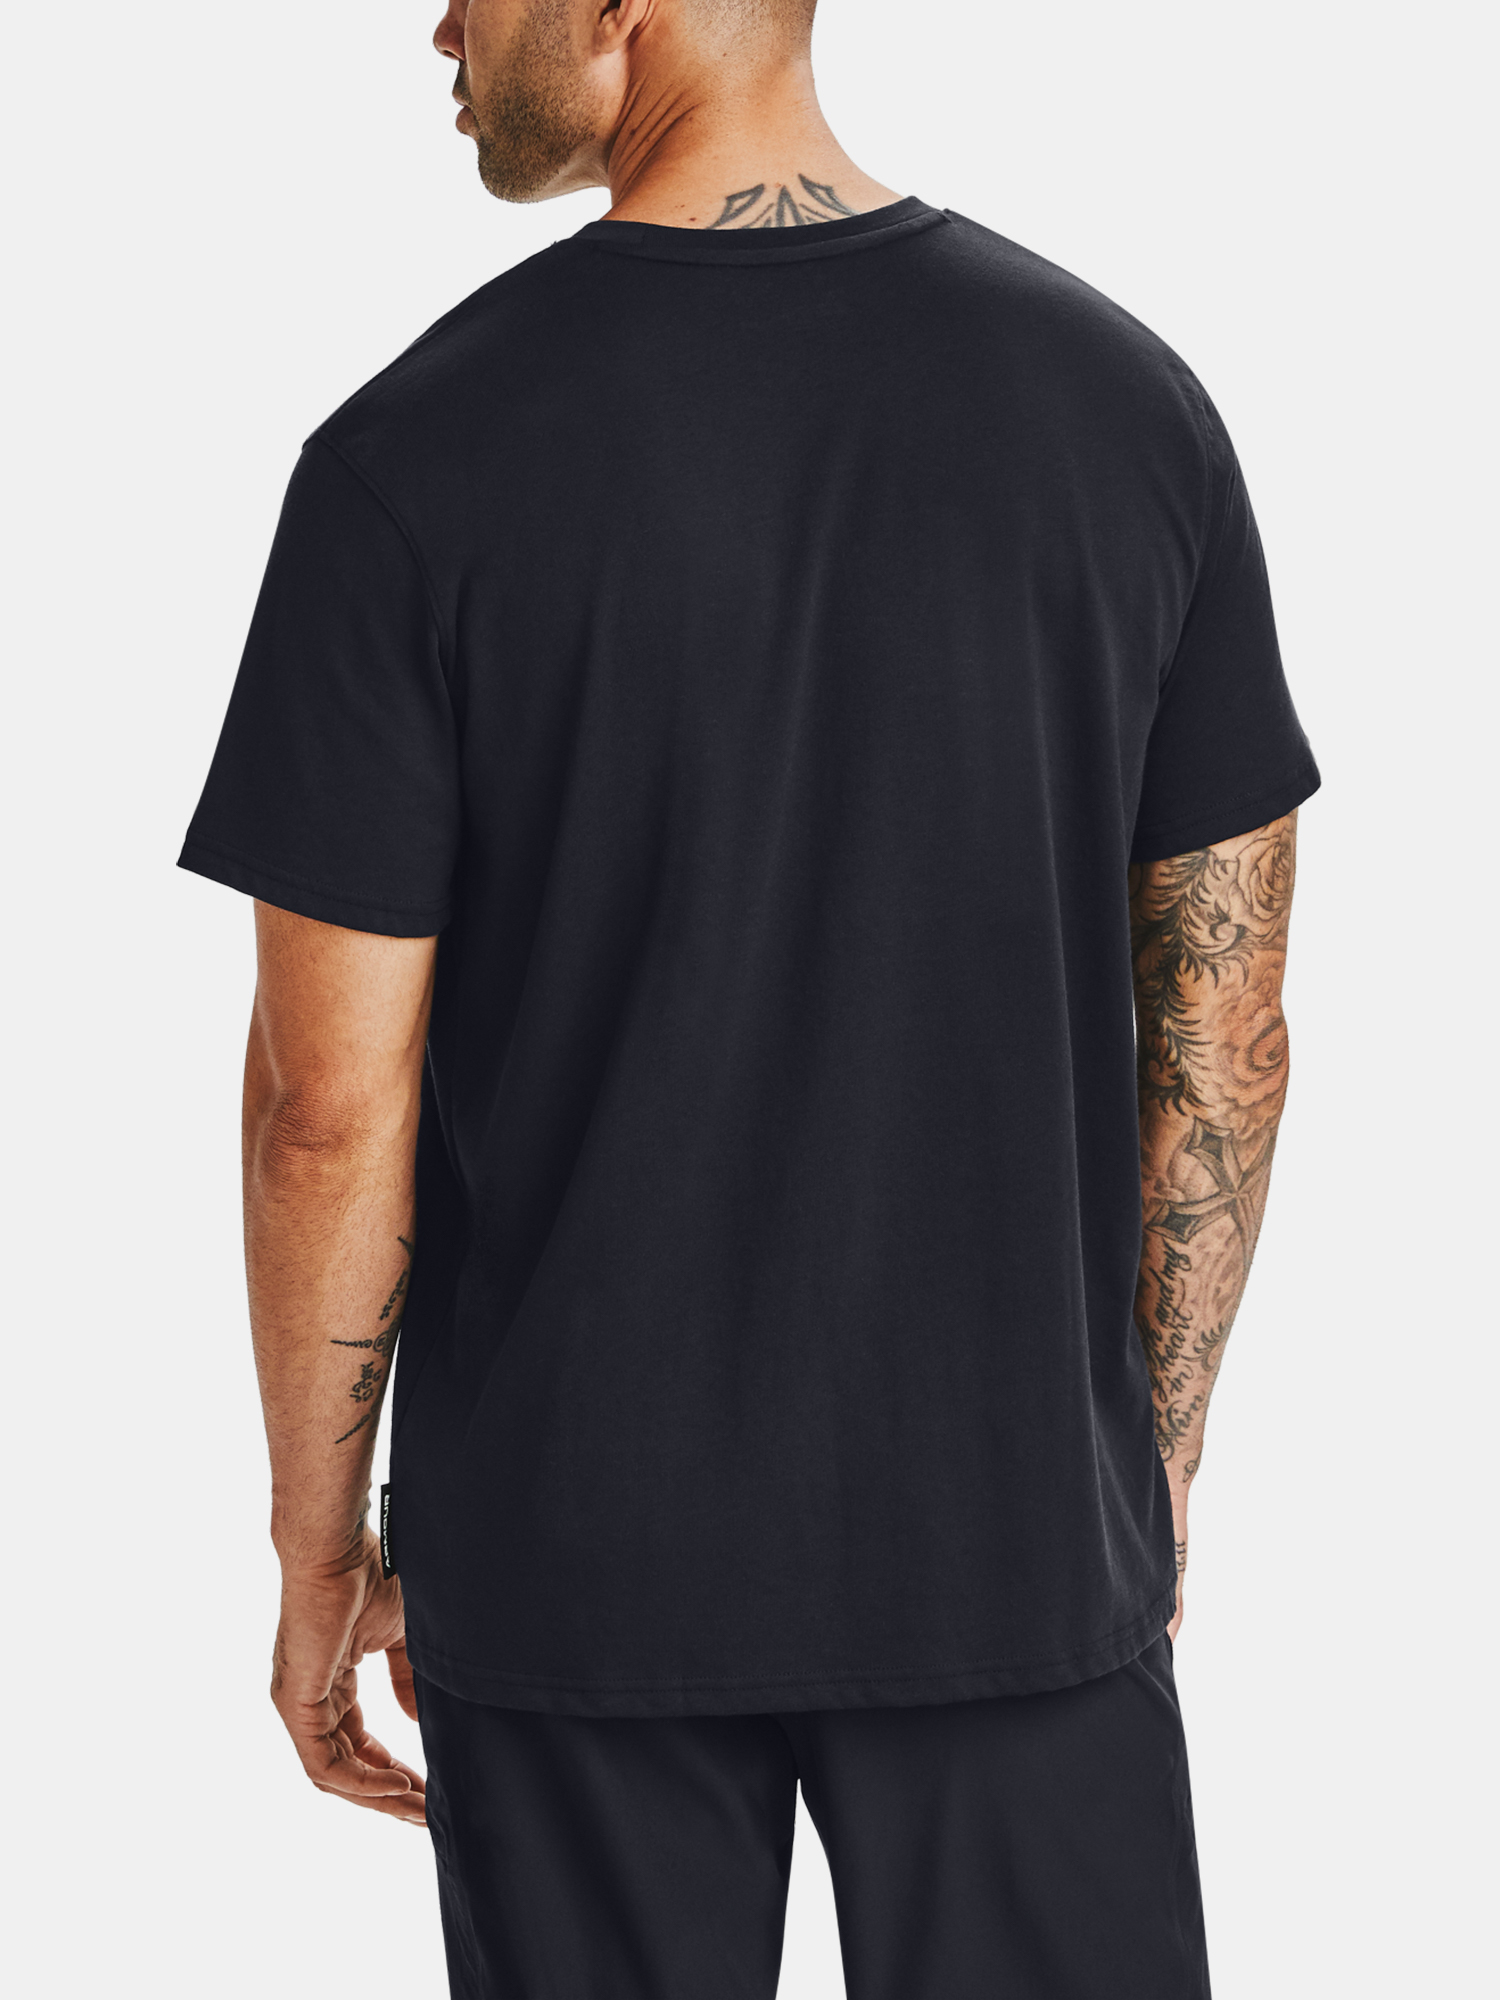 Tričko Under Armour CURRY EMBROIDERED TEE-BLK (2)